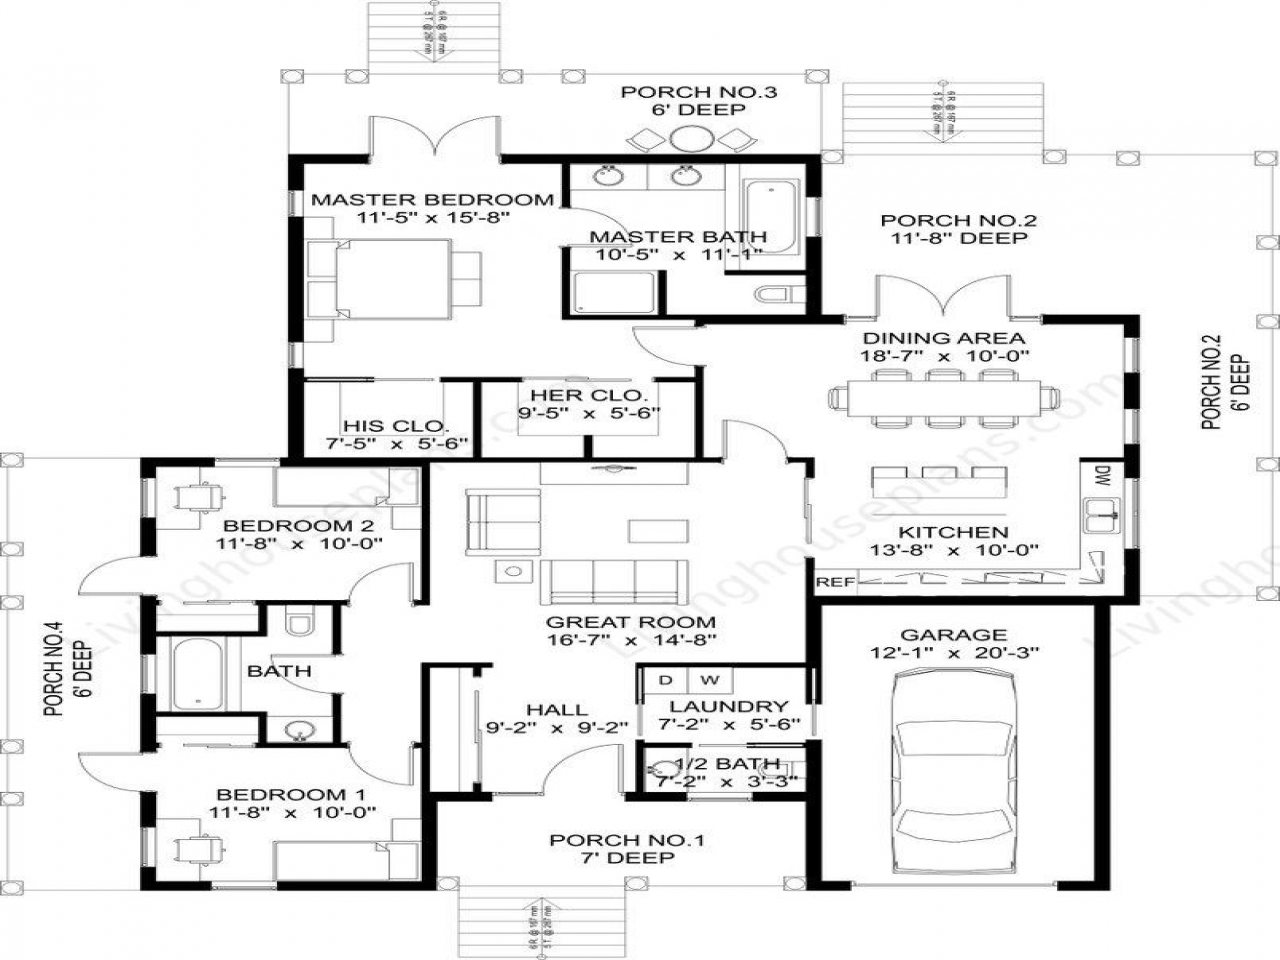 4 Bedroom Home Floor Plans Home Floor Plan Small Home